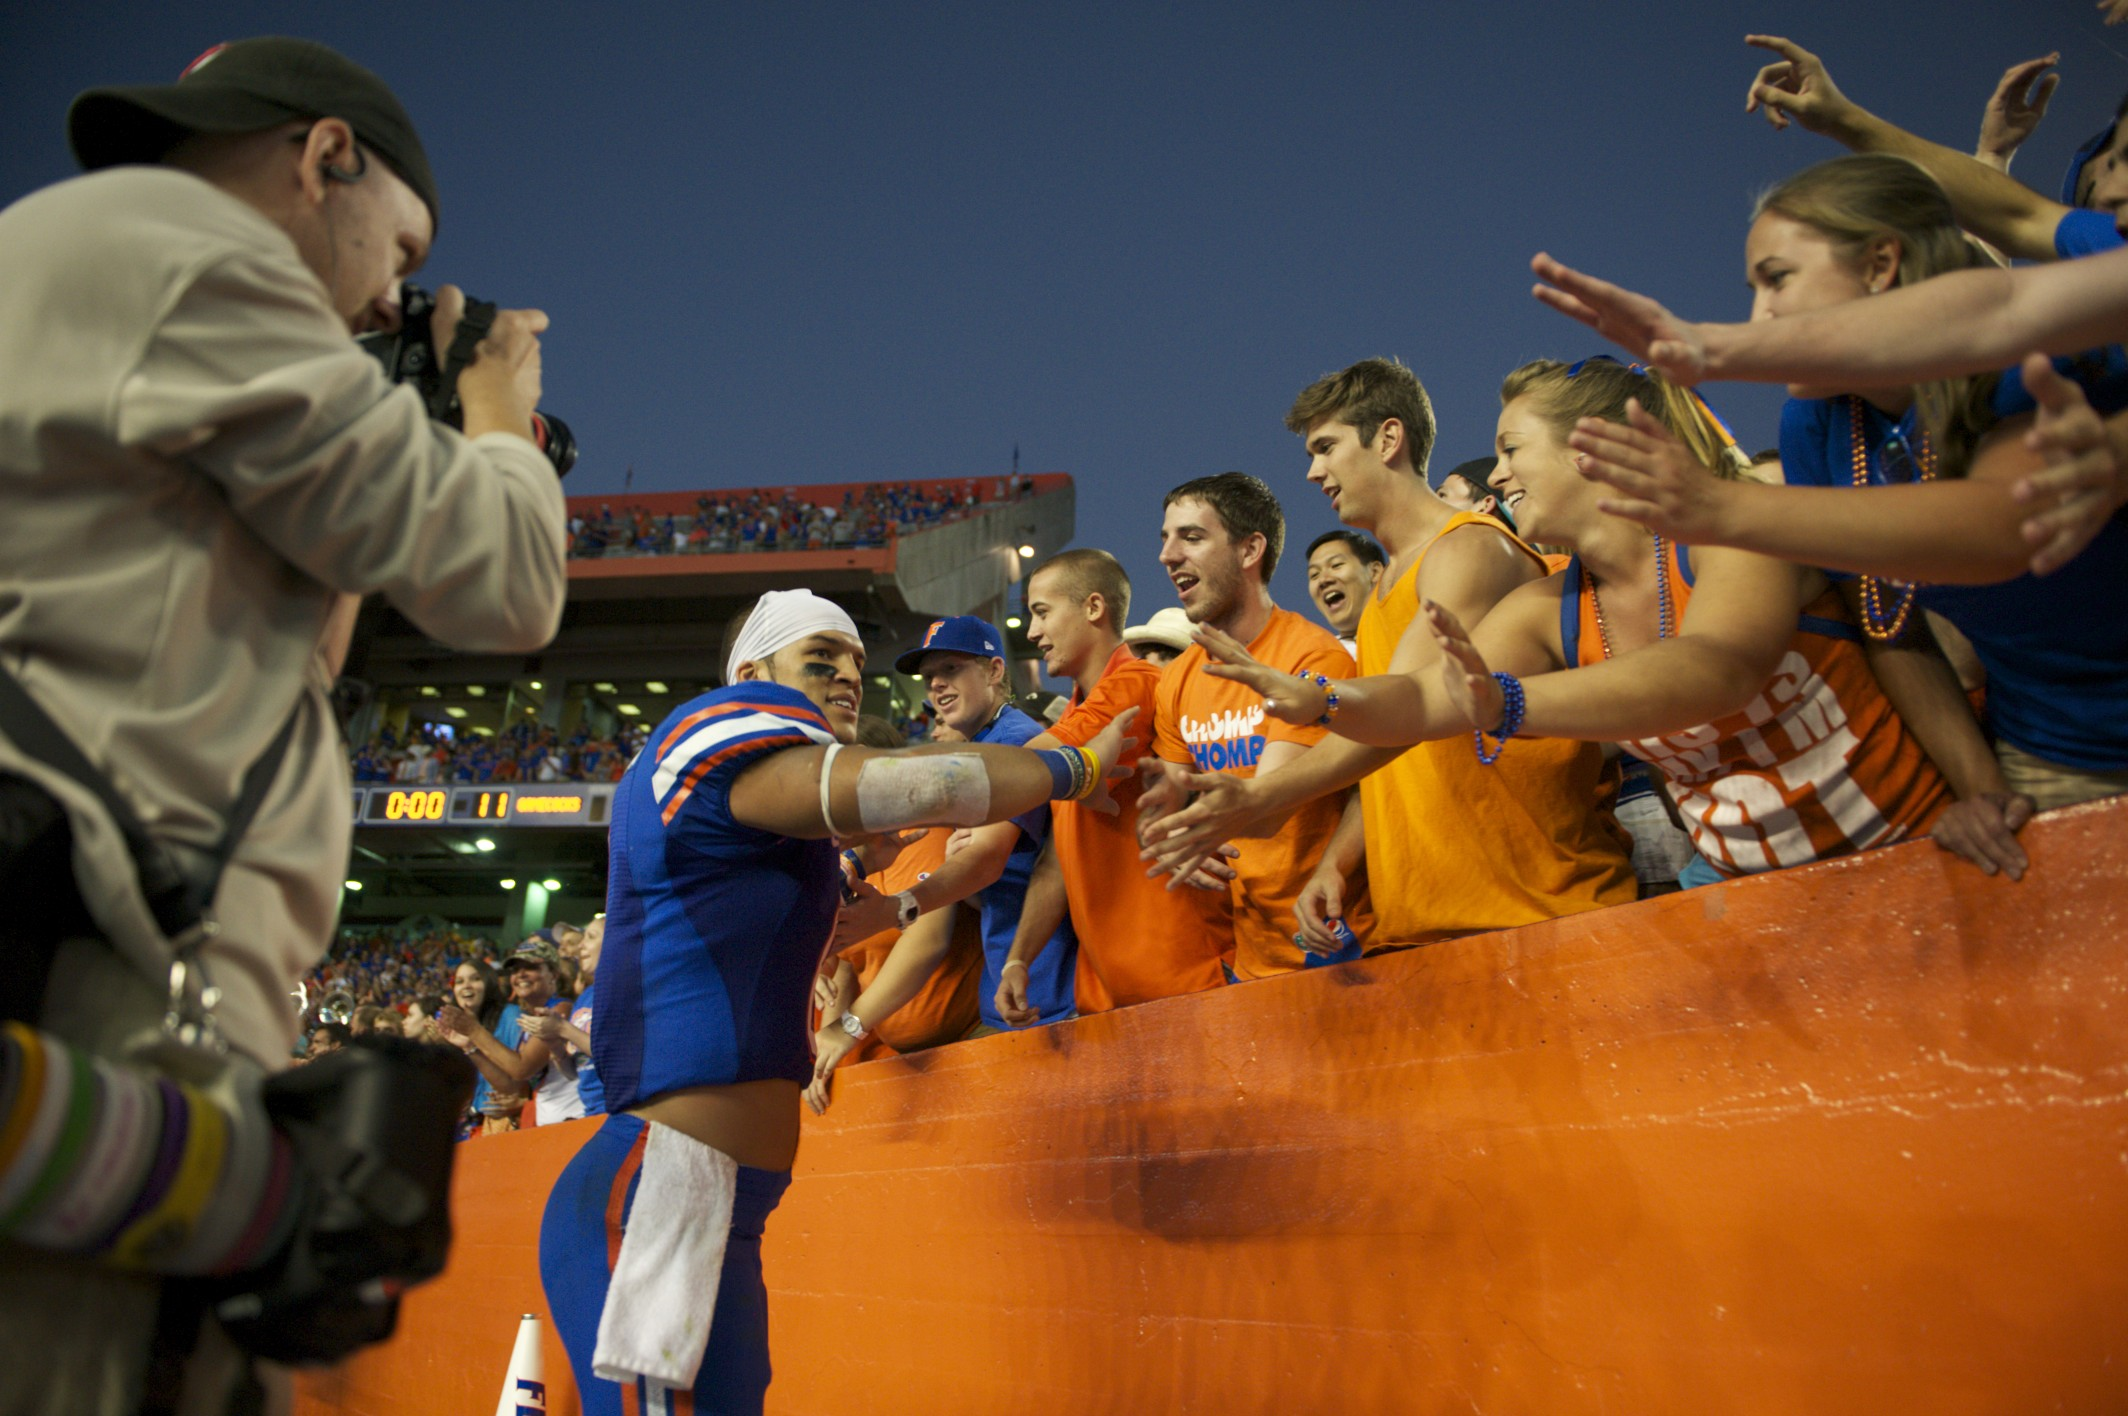 Trey Burton shows his appreciation to the fans by high fiving them after his team's victory on Saturday.